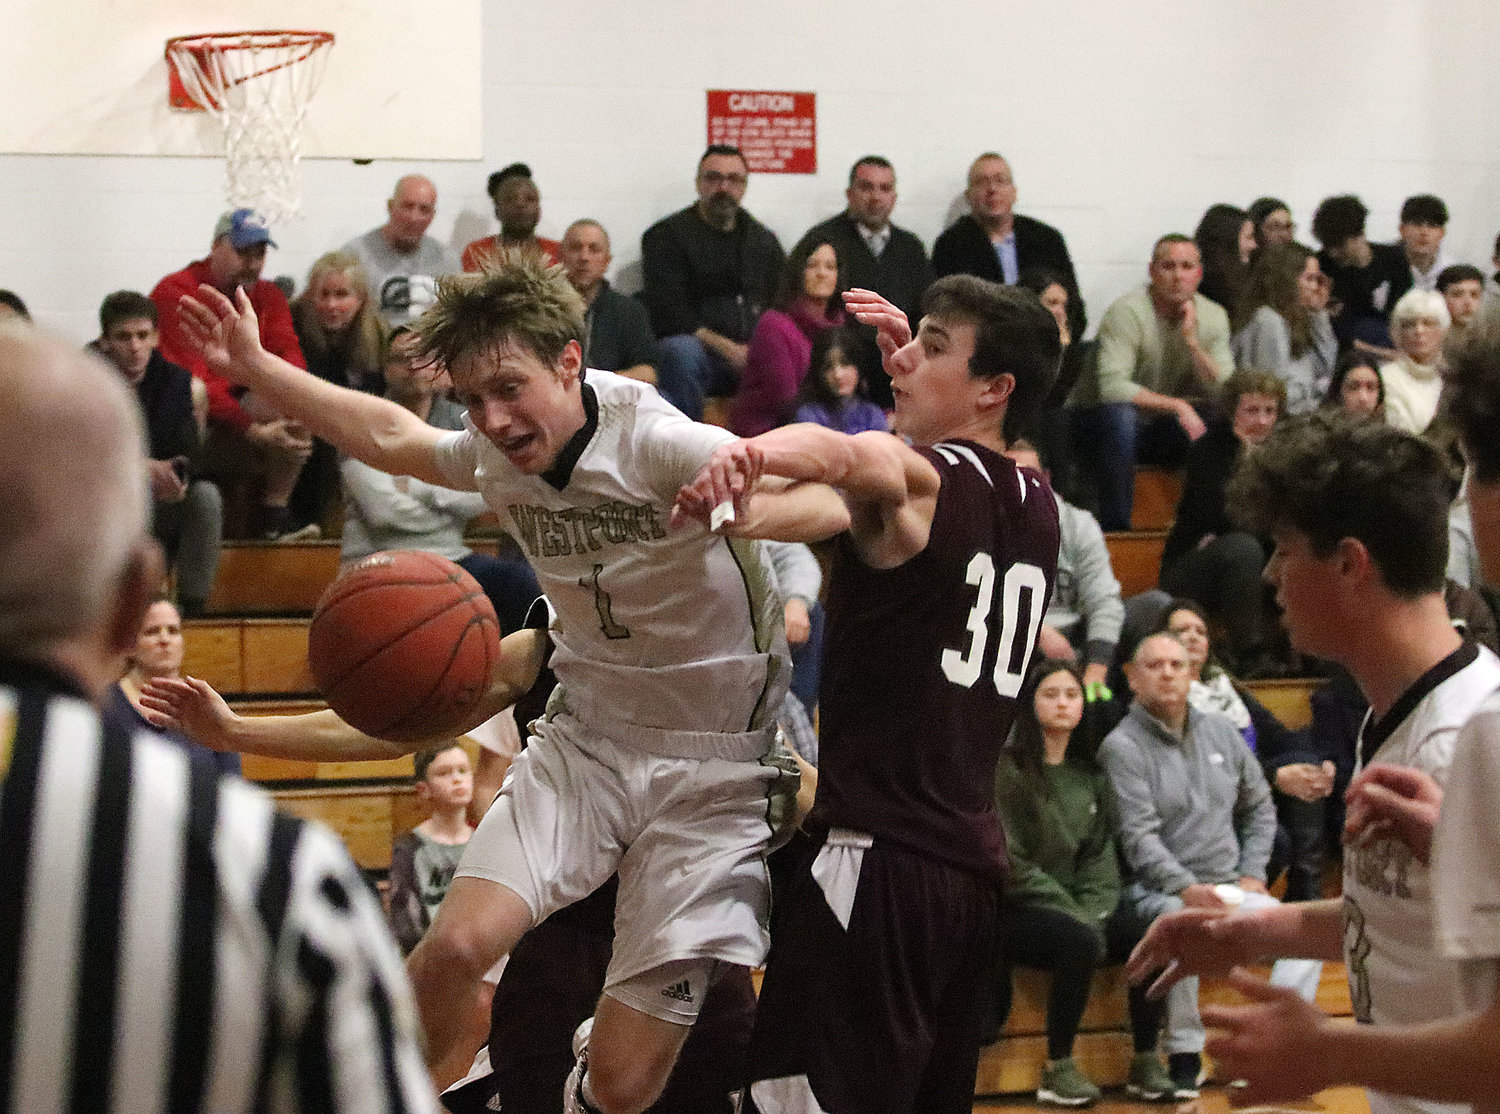 West Bridgewater's Zach Bellody taps the ball away from Connor Lecomte as he was heading towards the basket.